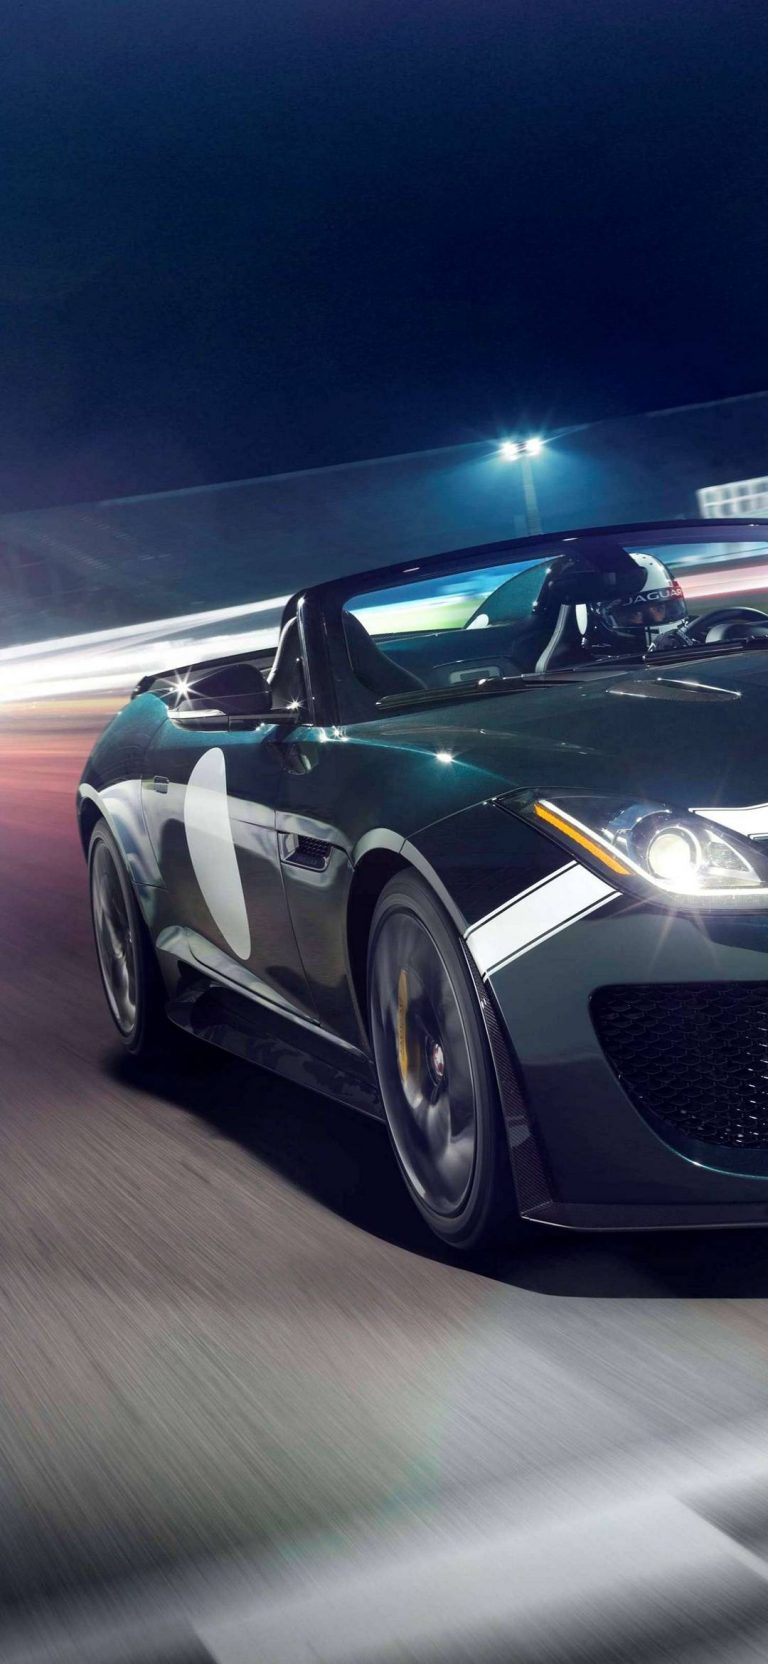 Jaguar F Type Project 7 2014 Wallpaper 1080x2340 768x1664